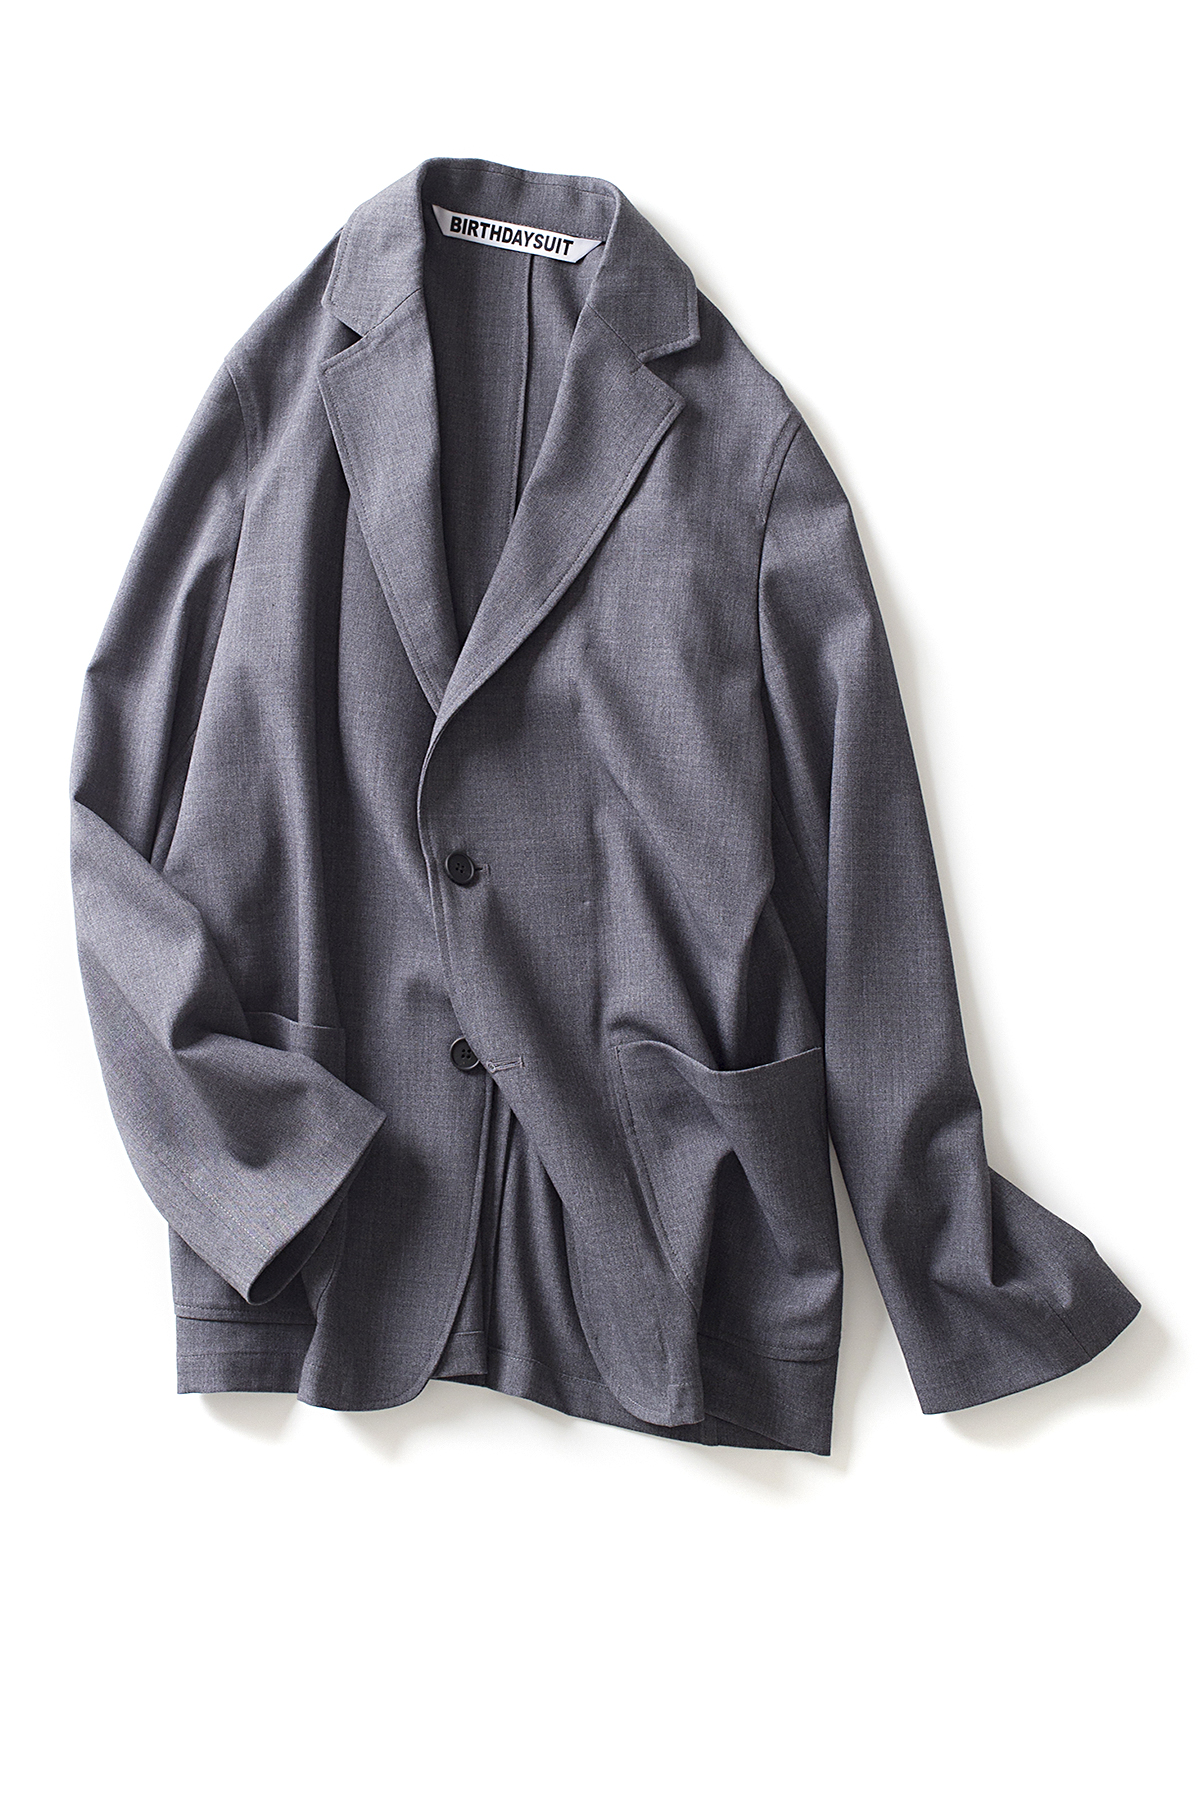 BIRTHDAYSUIT : Daily Jacket (Light Grey)